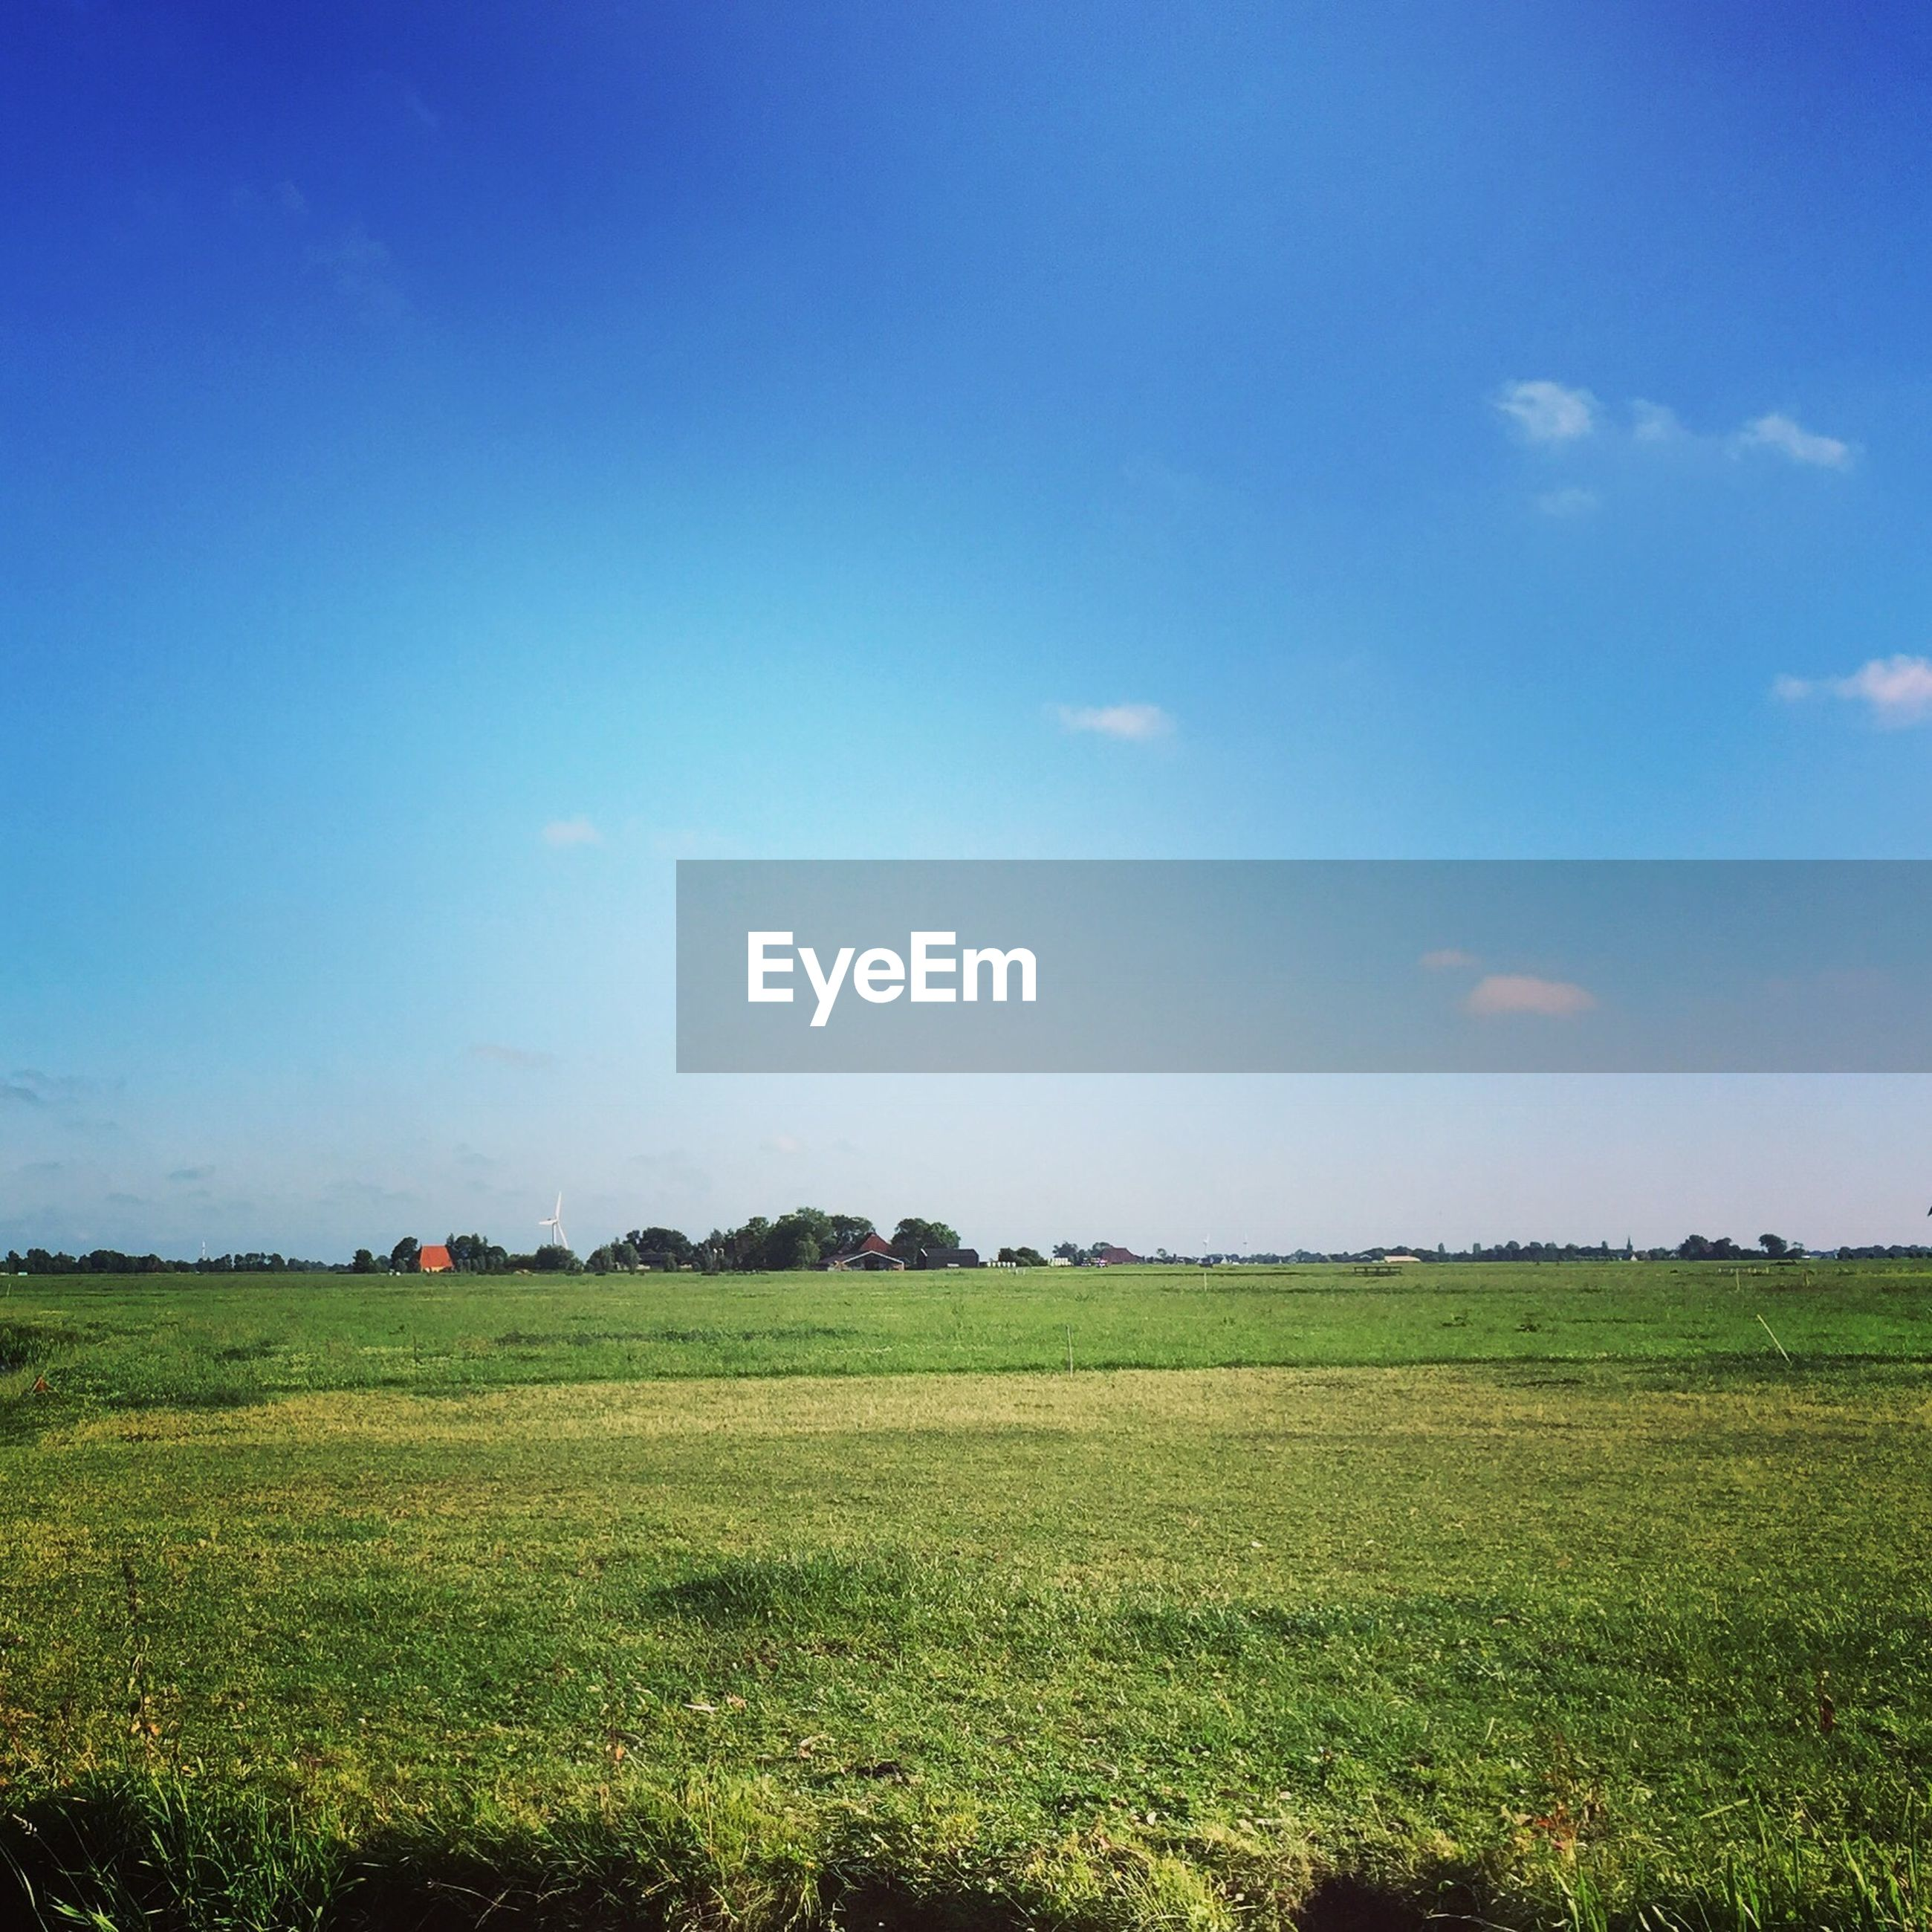 SCENIC VIEW OF GREEN FIELD AGAINST BLUE SKY